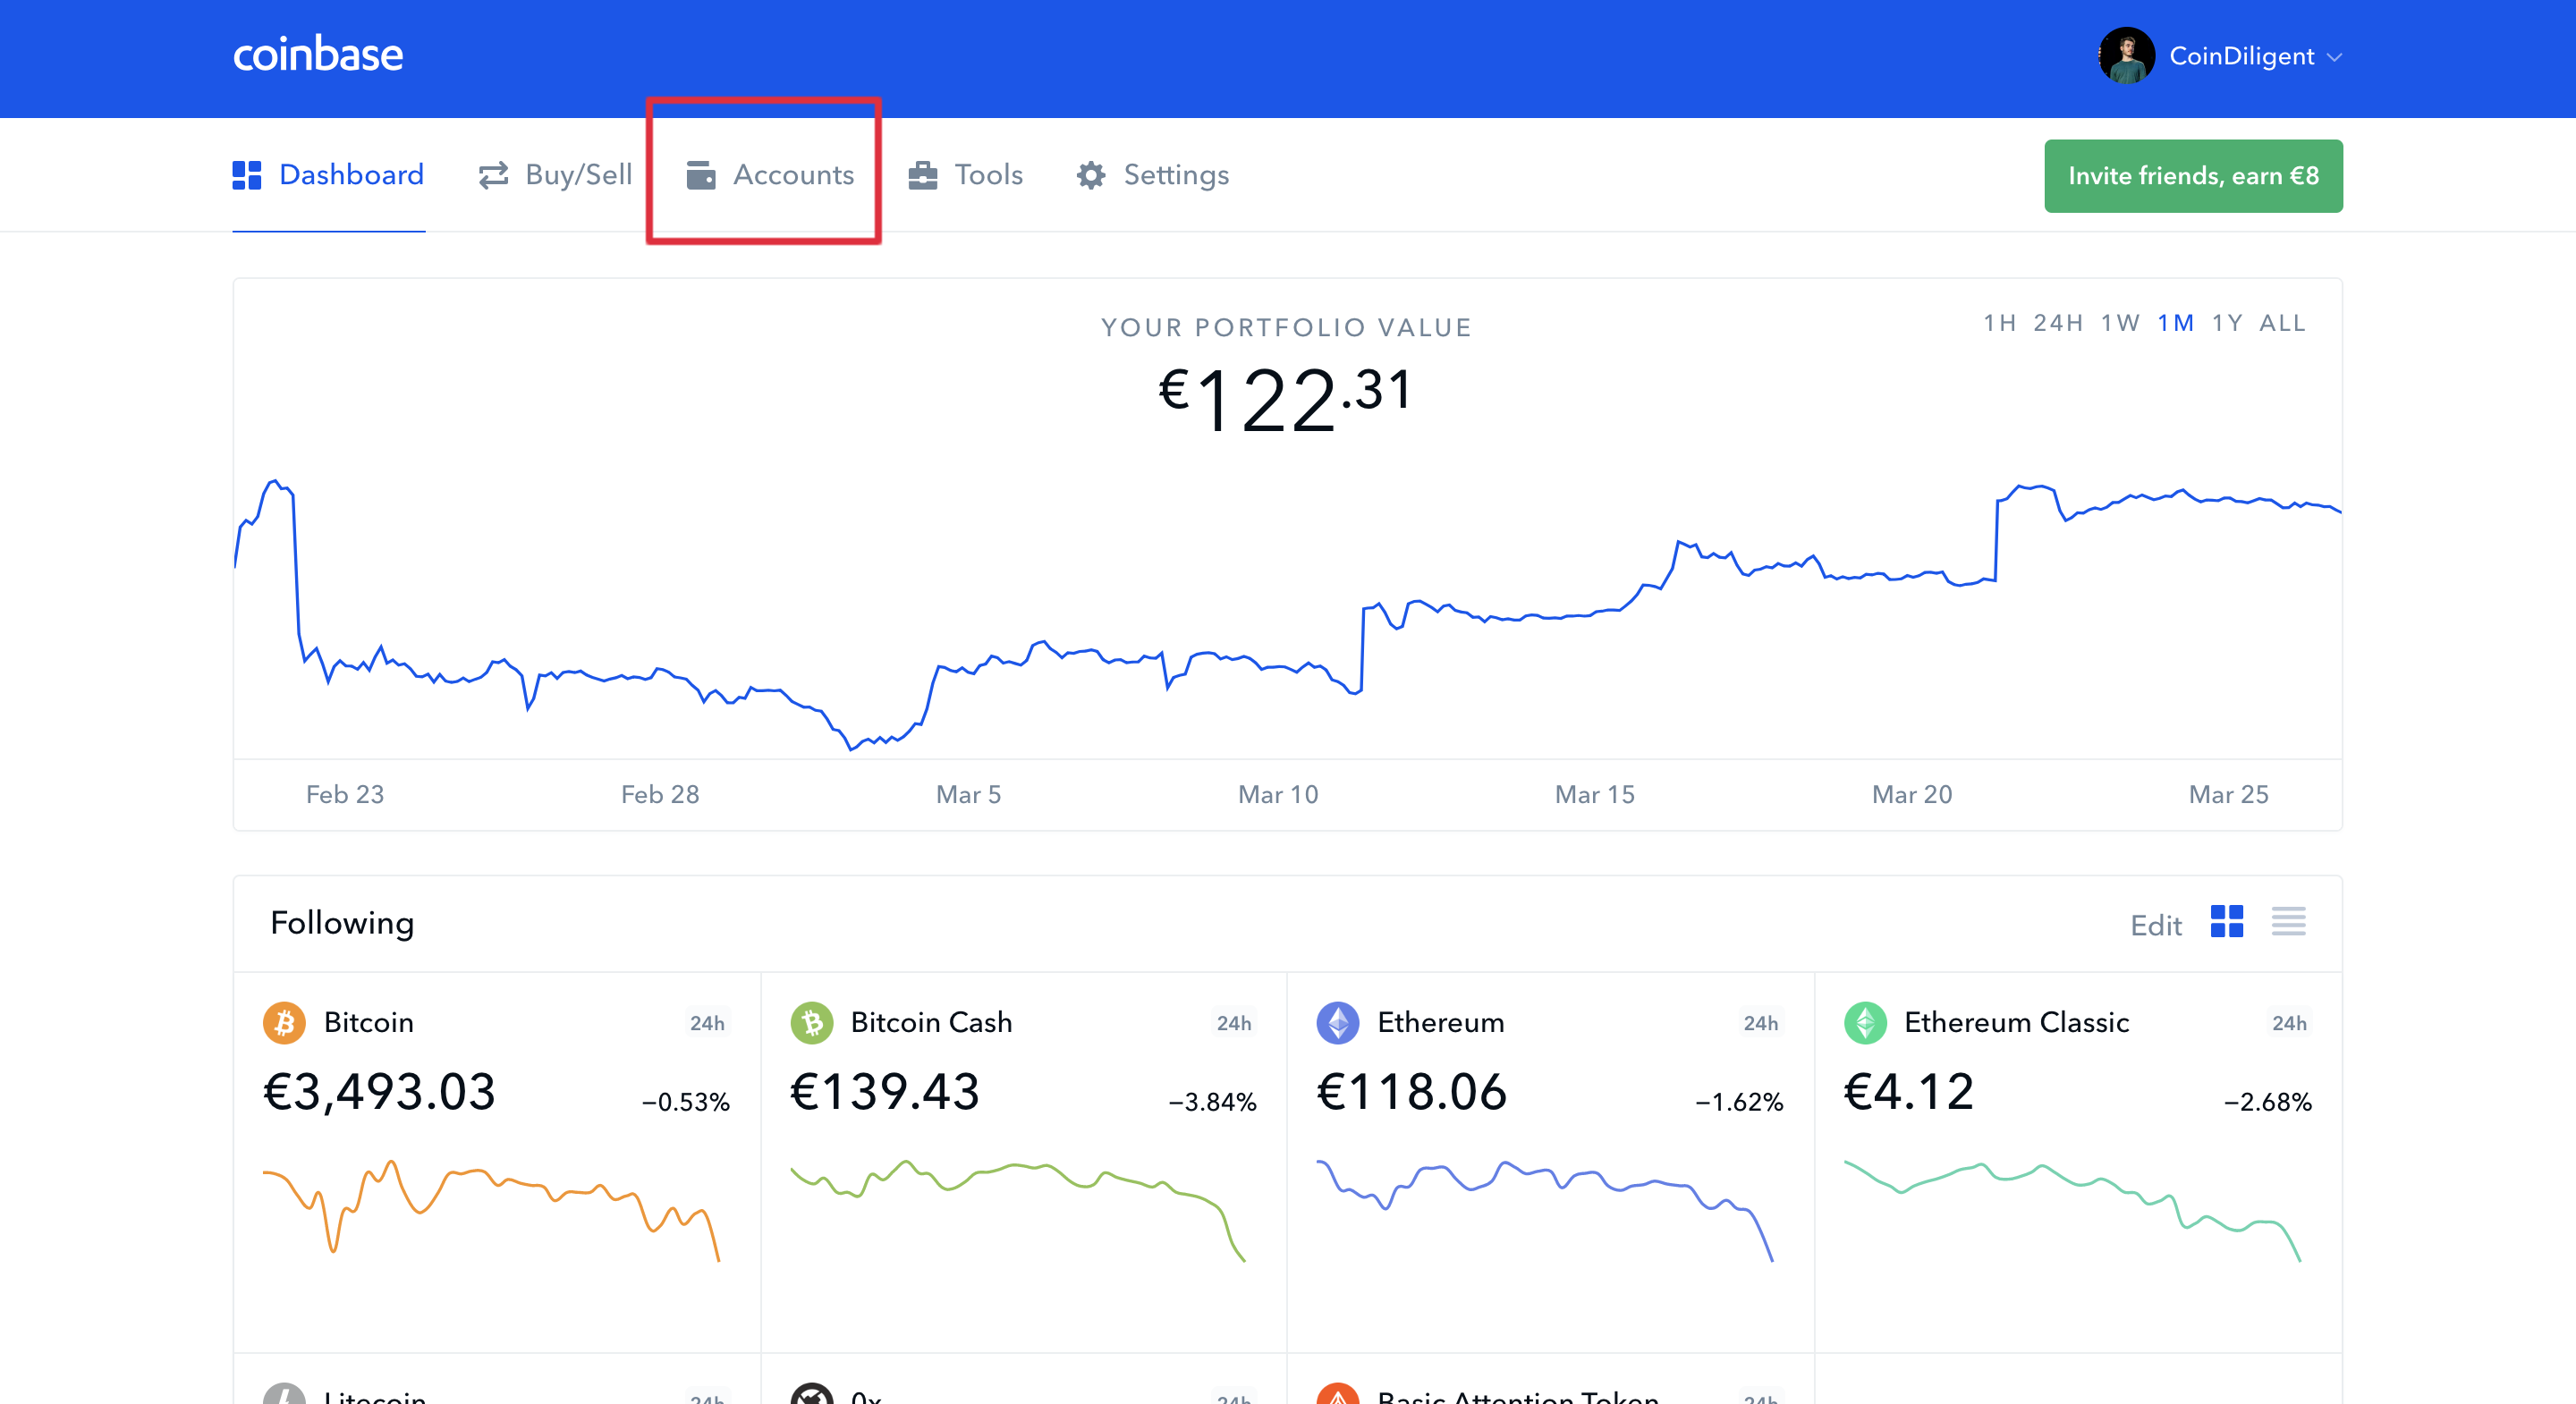 coinbase accounts tab